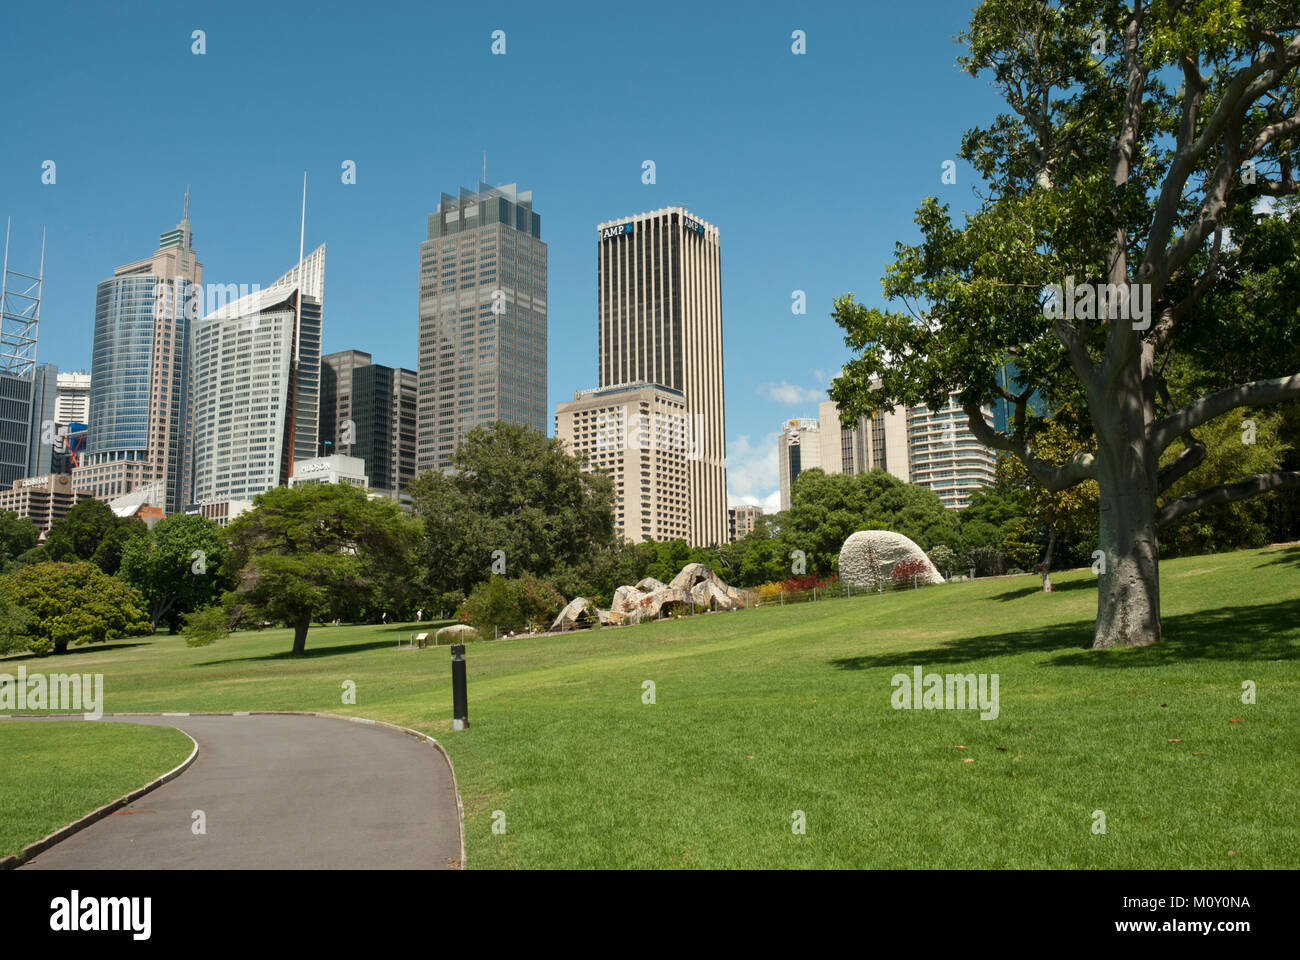 The Royal Botanic Garden, Sydney, sunny, blue sky with the high rise CBD (central business district) in the background - Stock Image